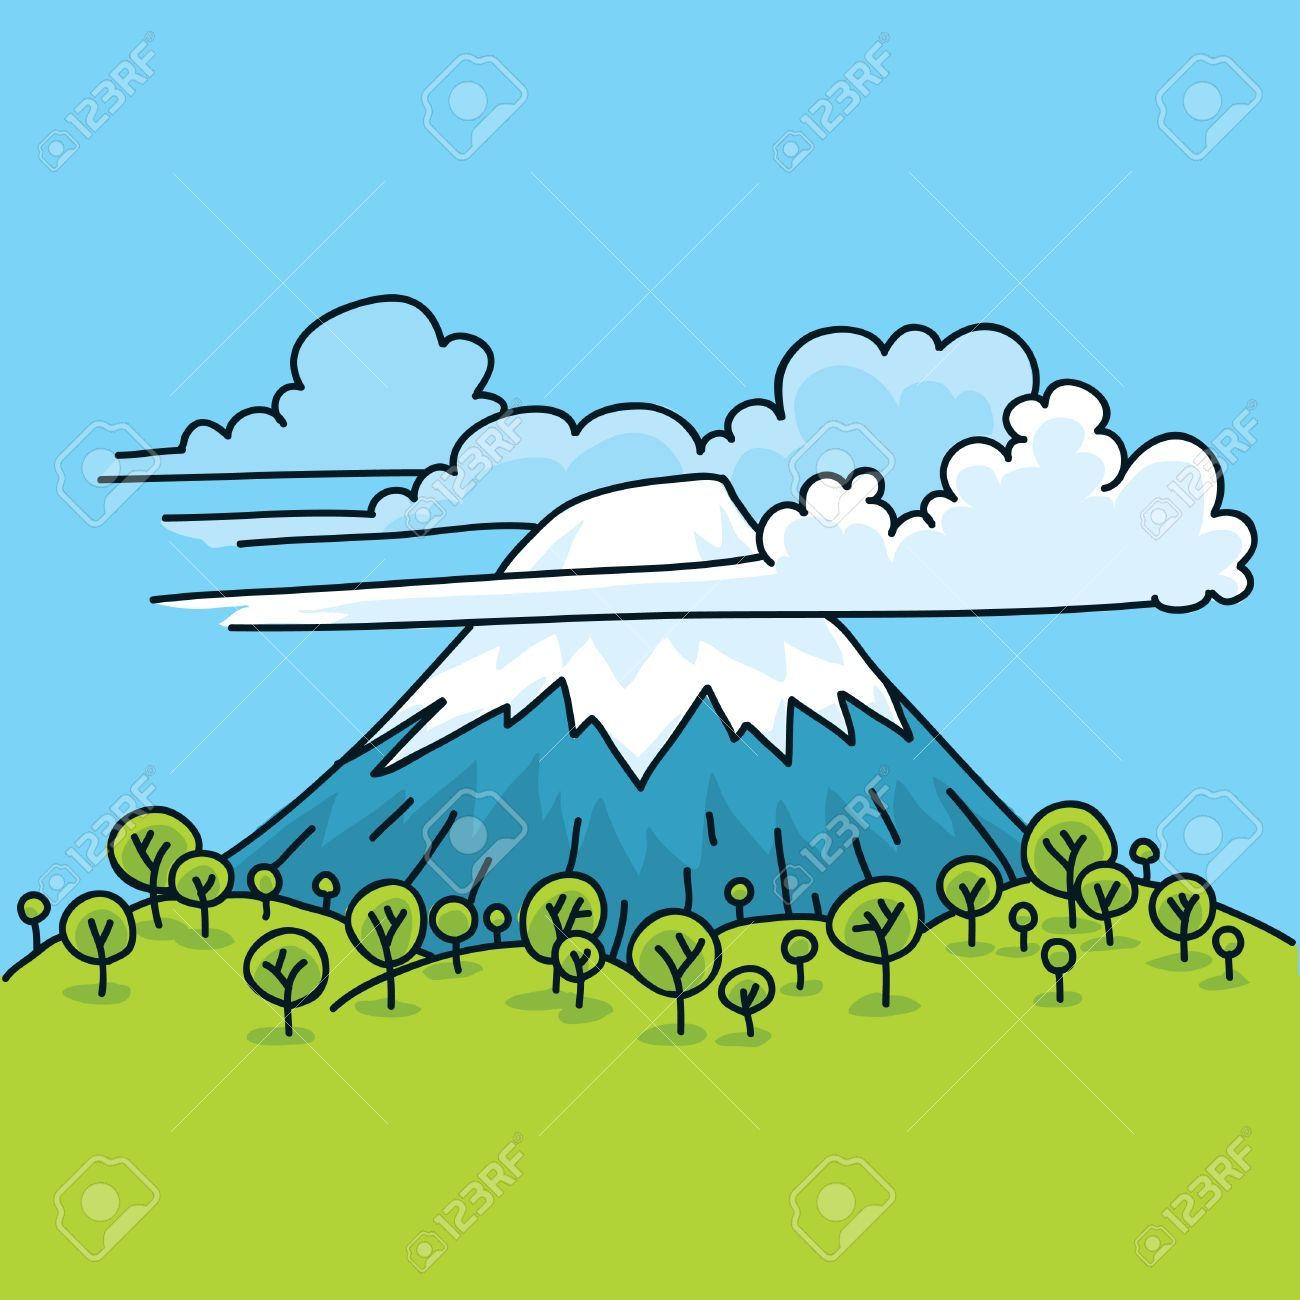 Clouds surround a cartoon mountain in spring. , #Ad, #surround, #Clouds, #cartoon, #spring, #mountain